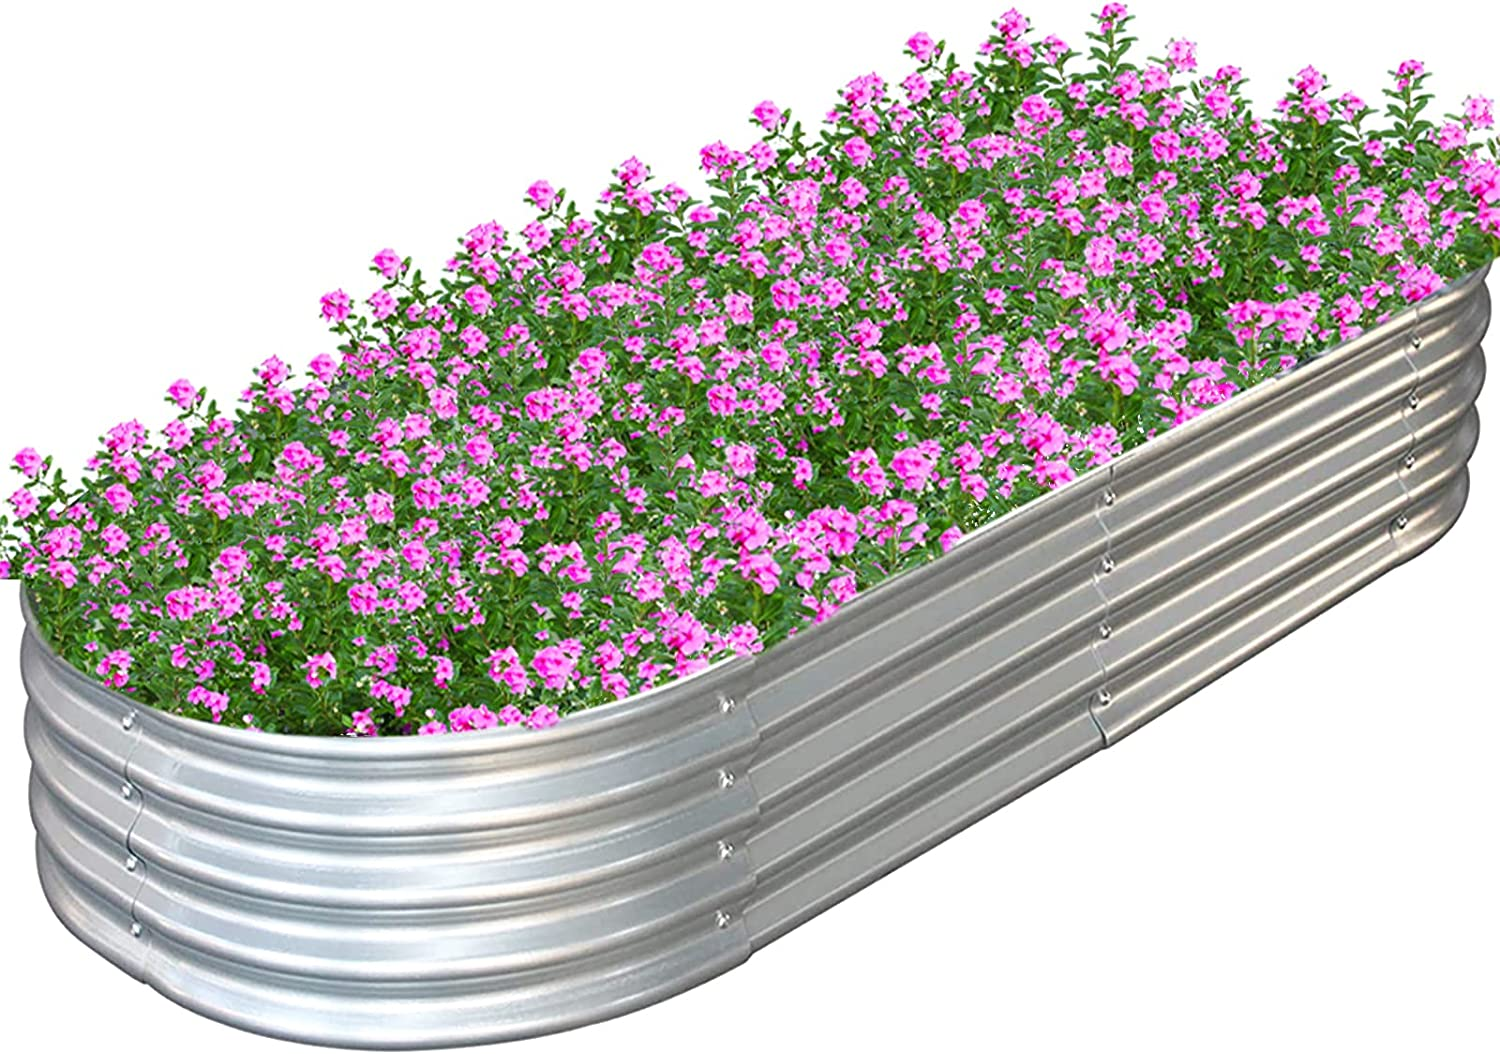 Raised Garden Bed Boxes Kit for Vegetables Flowers Fruits Metal Galvanized Above Ground Planter Box Outdoor 83'' L x 35.5'' W x 11.4'' H